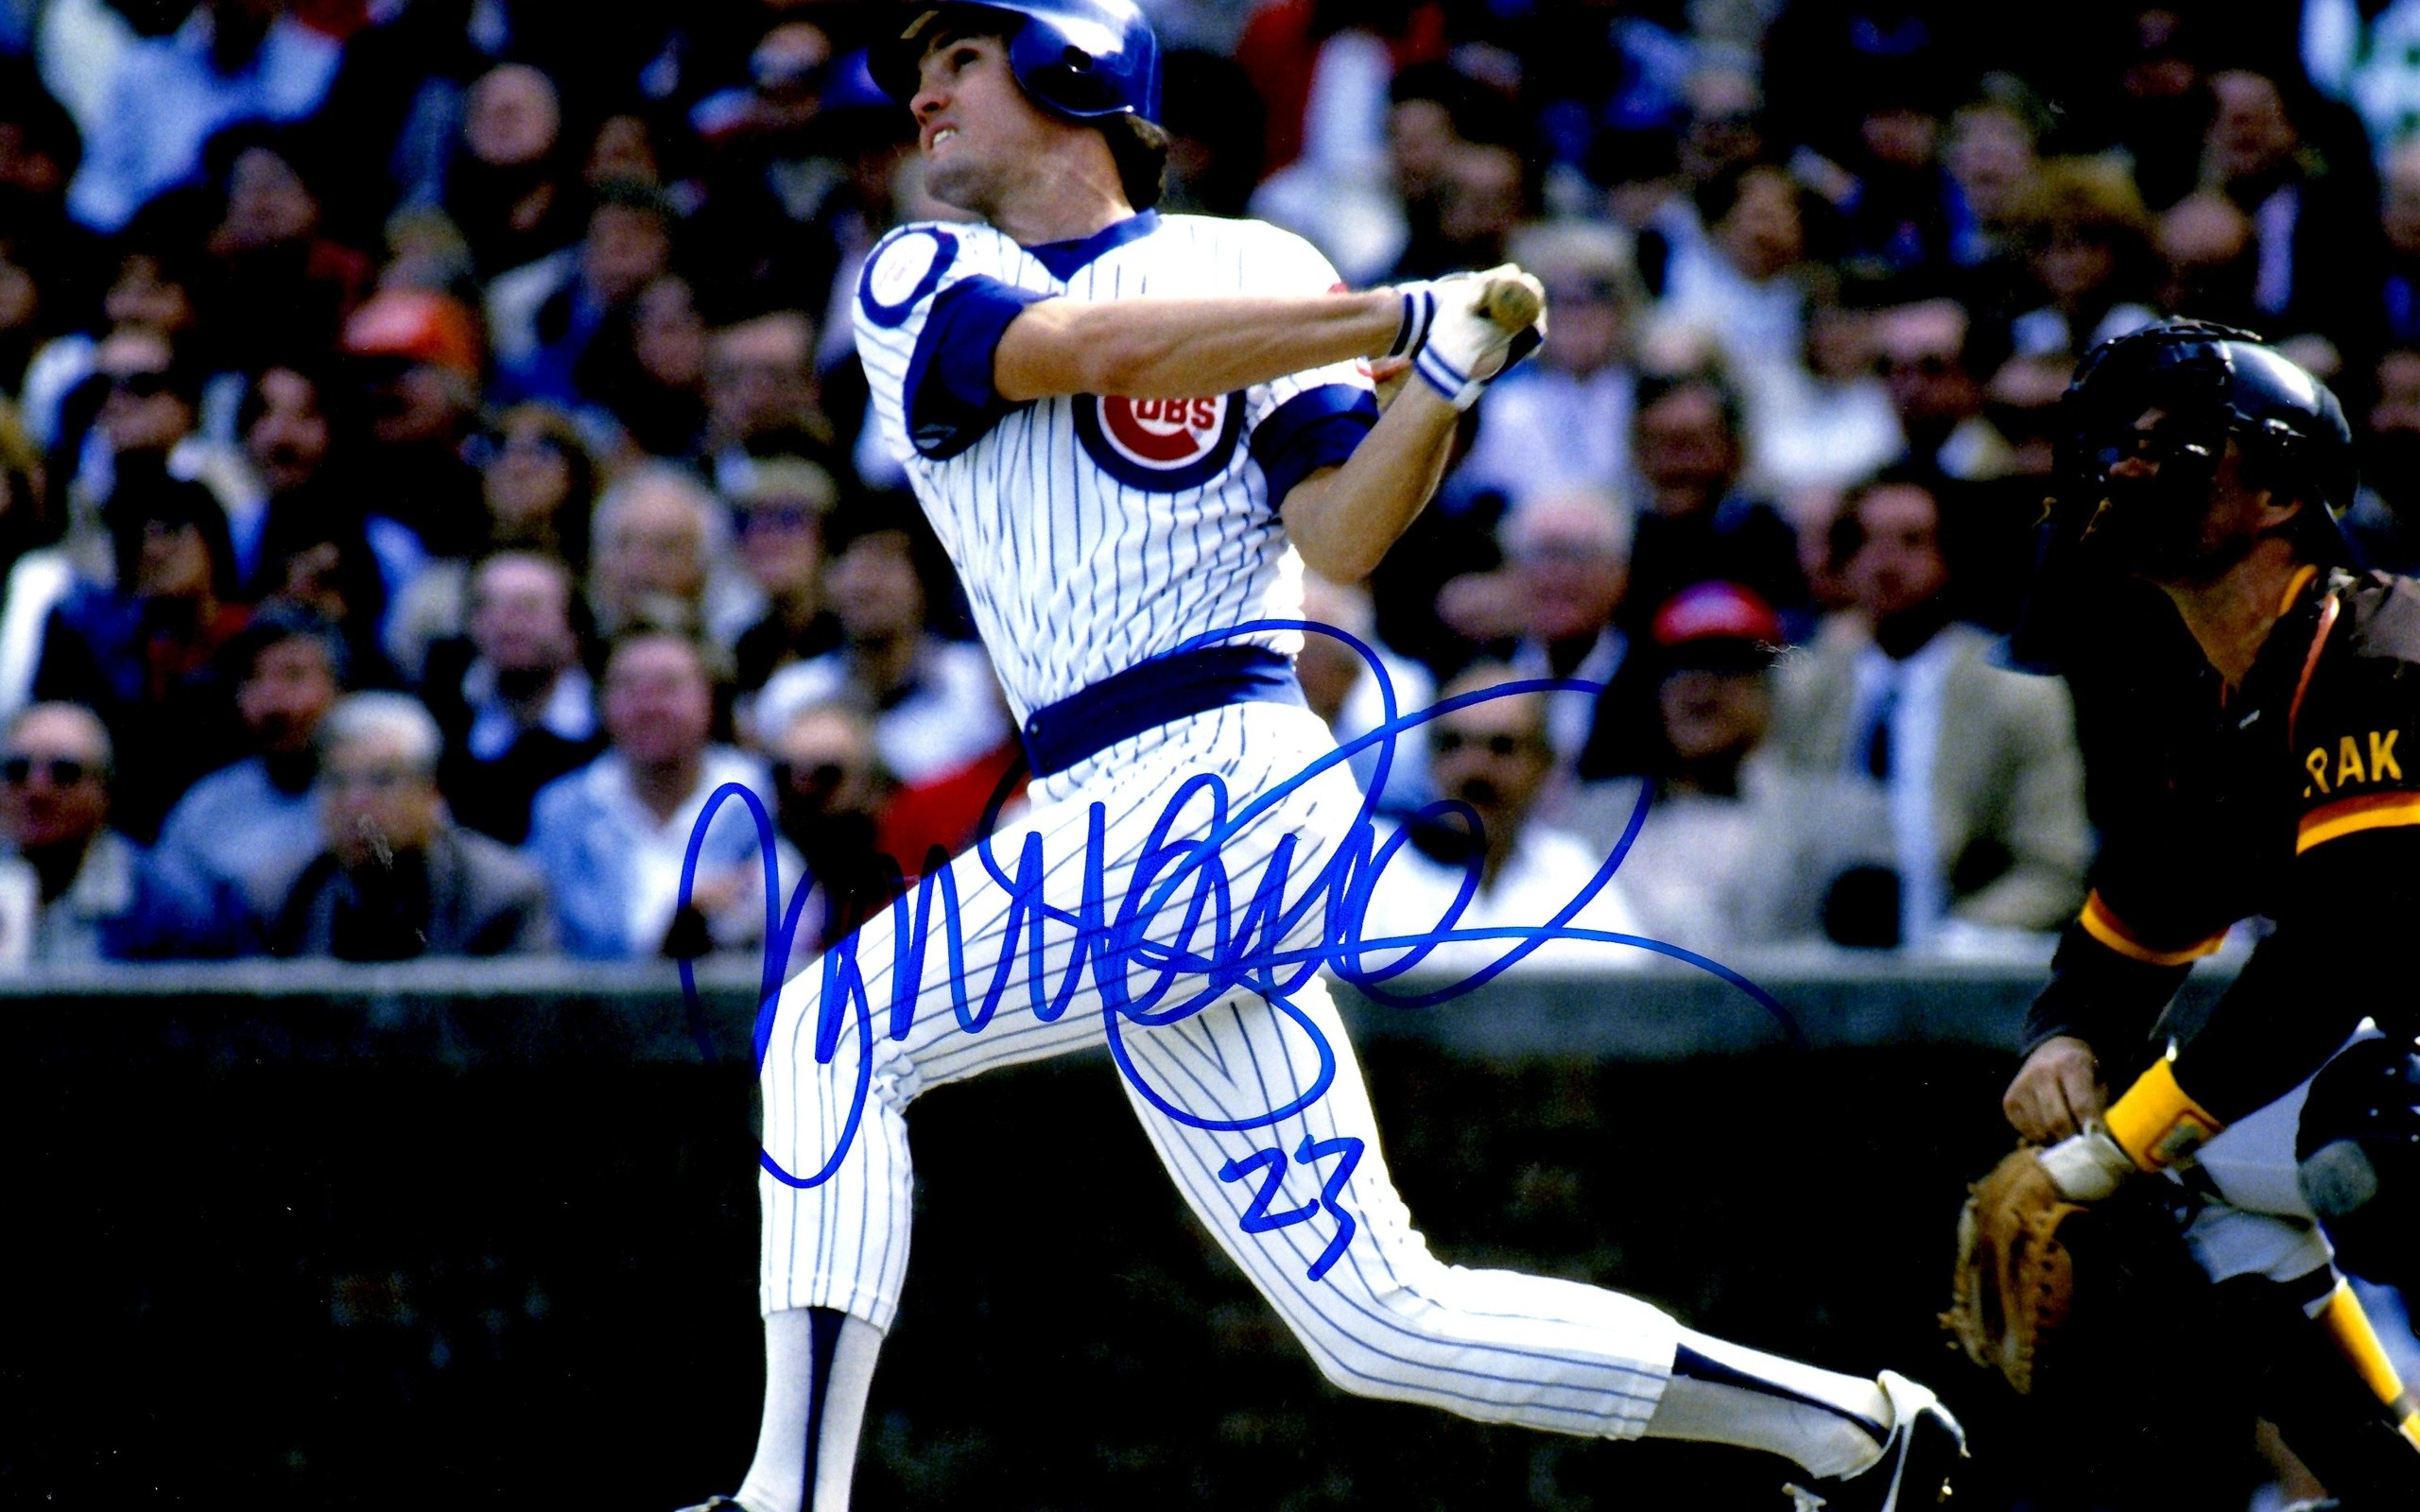 Chicago Cubs Mlb The Baseball Player, Mlb, Sports, The Batter, Chicago Cubs